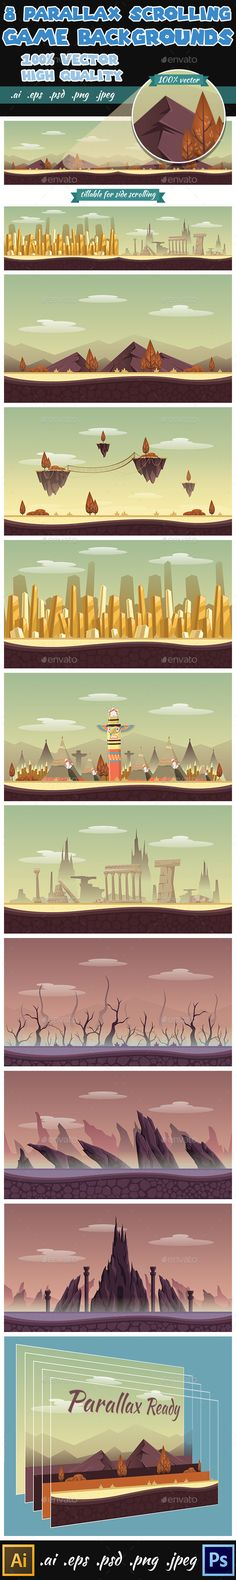 8 Game Backgrounds - Parallex Side Scrolling (Photoshop PSD, Transparent PNG, JPG Image, Vector EPS, AI Illustrator, CS, 2d, 2d game backgrounds, android, app background, asset, background, backgrounds, bg, flash background, flash bg, game, game art, game assets, game background, game design, game landscape, gaming, landscape, side scroll, side-scroll, sidescroll, sidescroller, sidescrolling, tile, Tile Set, tileable, tileset, ui, vector, video game)